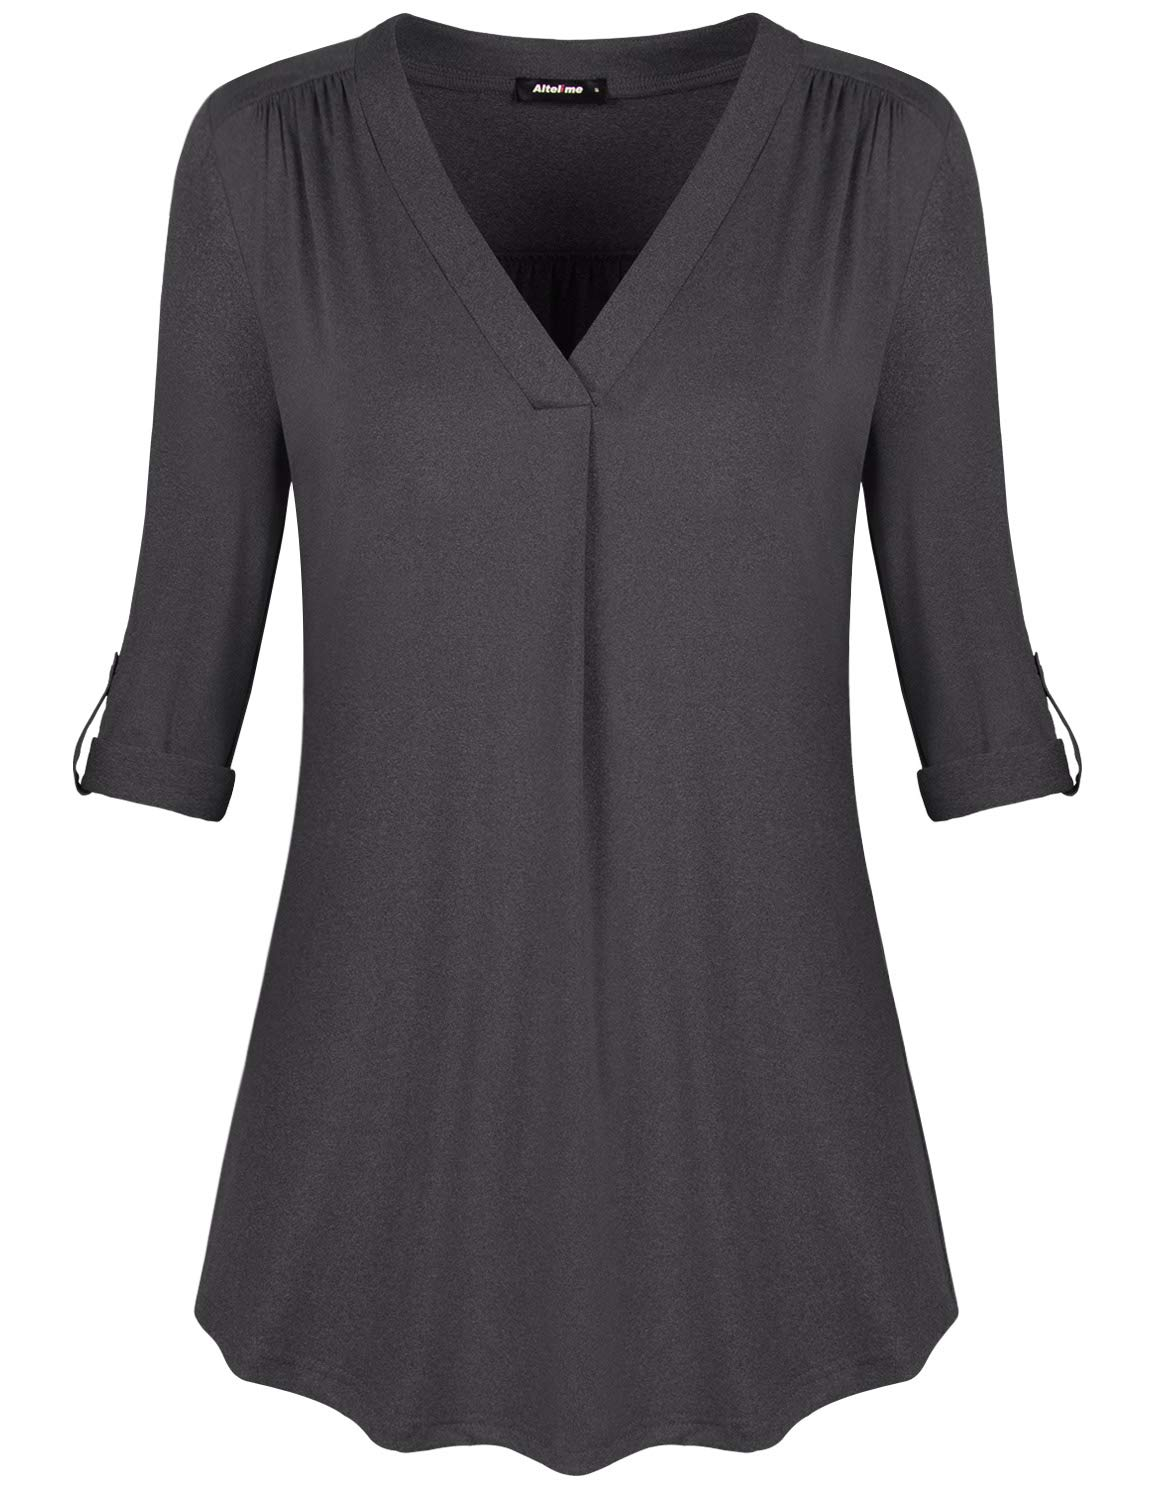 Altelime Tunic Blouses for Women 3/4 Sleeve, Juniors Long Sleeve Tops Soft Knit Jersey Henley V Neck Pleated Ruched Detail Loose Daily Wear Elegant Cuff Sleeve Blouse Shirts Charcoal Grey XL